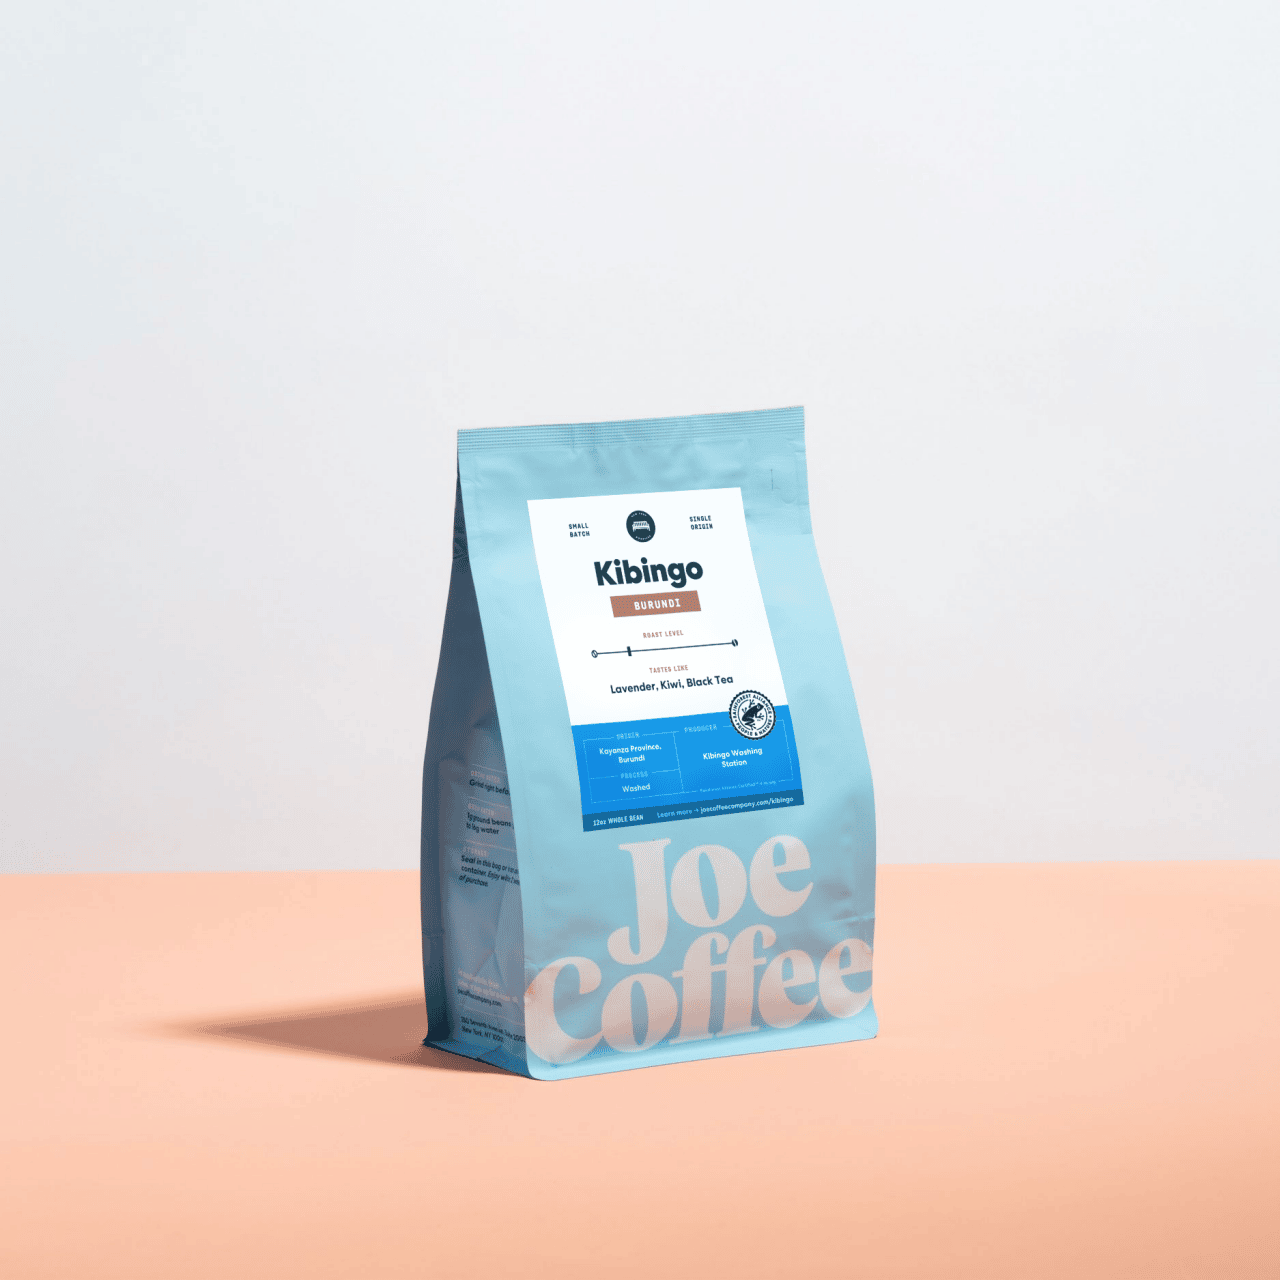 12oz bag of Burundi Kibingo